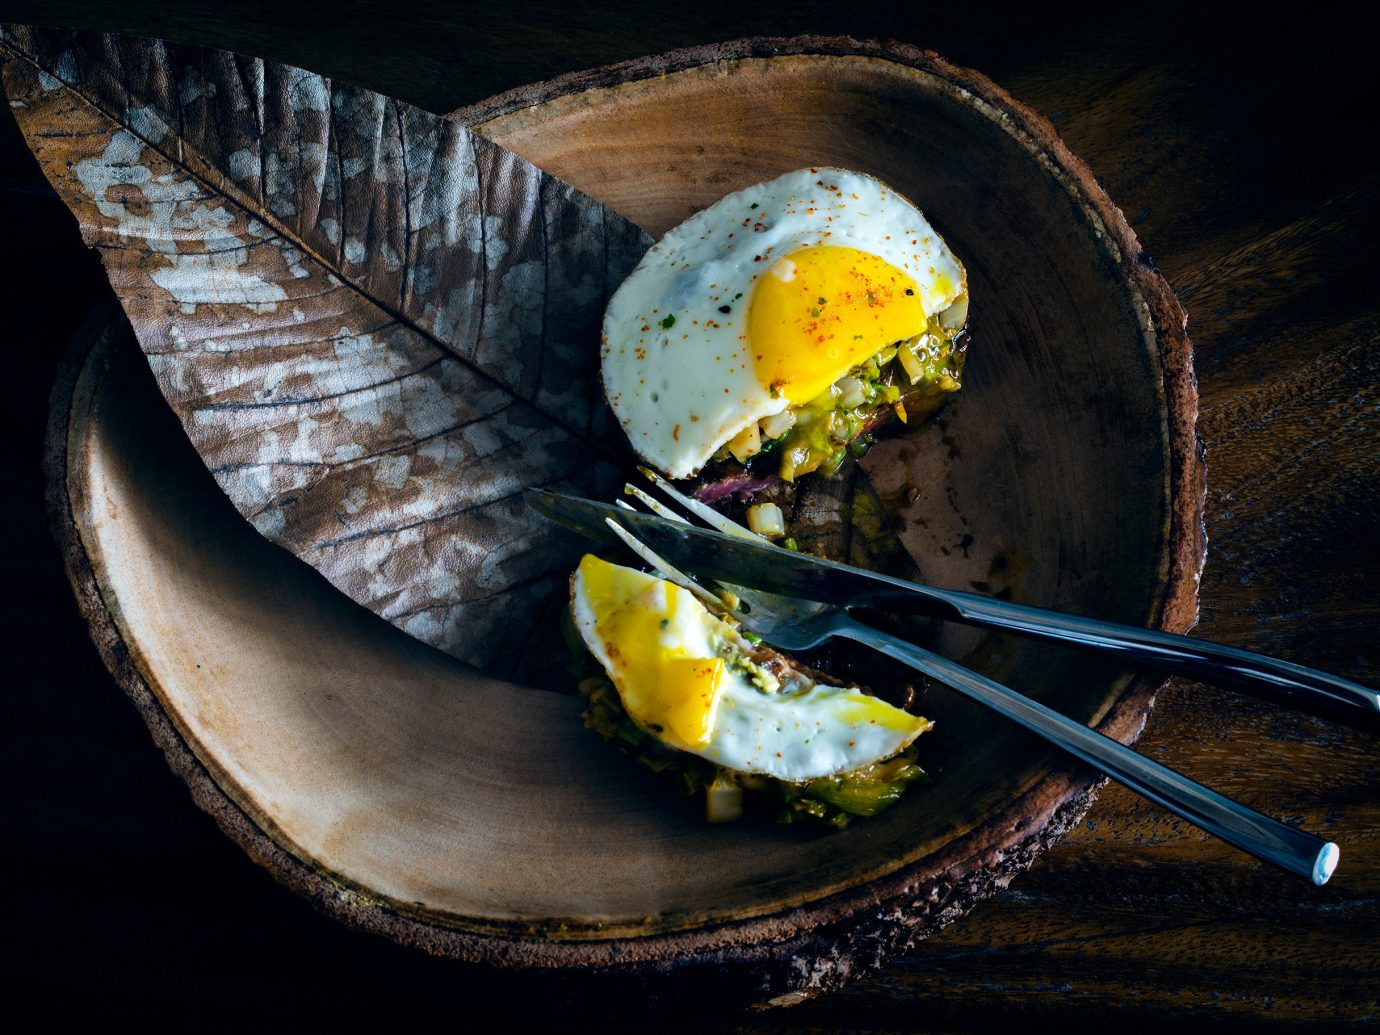 Food + Drink still life photography yellow food dish leaf produce macro photography slice fork egg eaten sliced